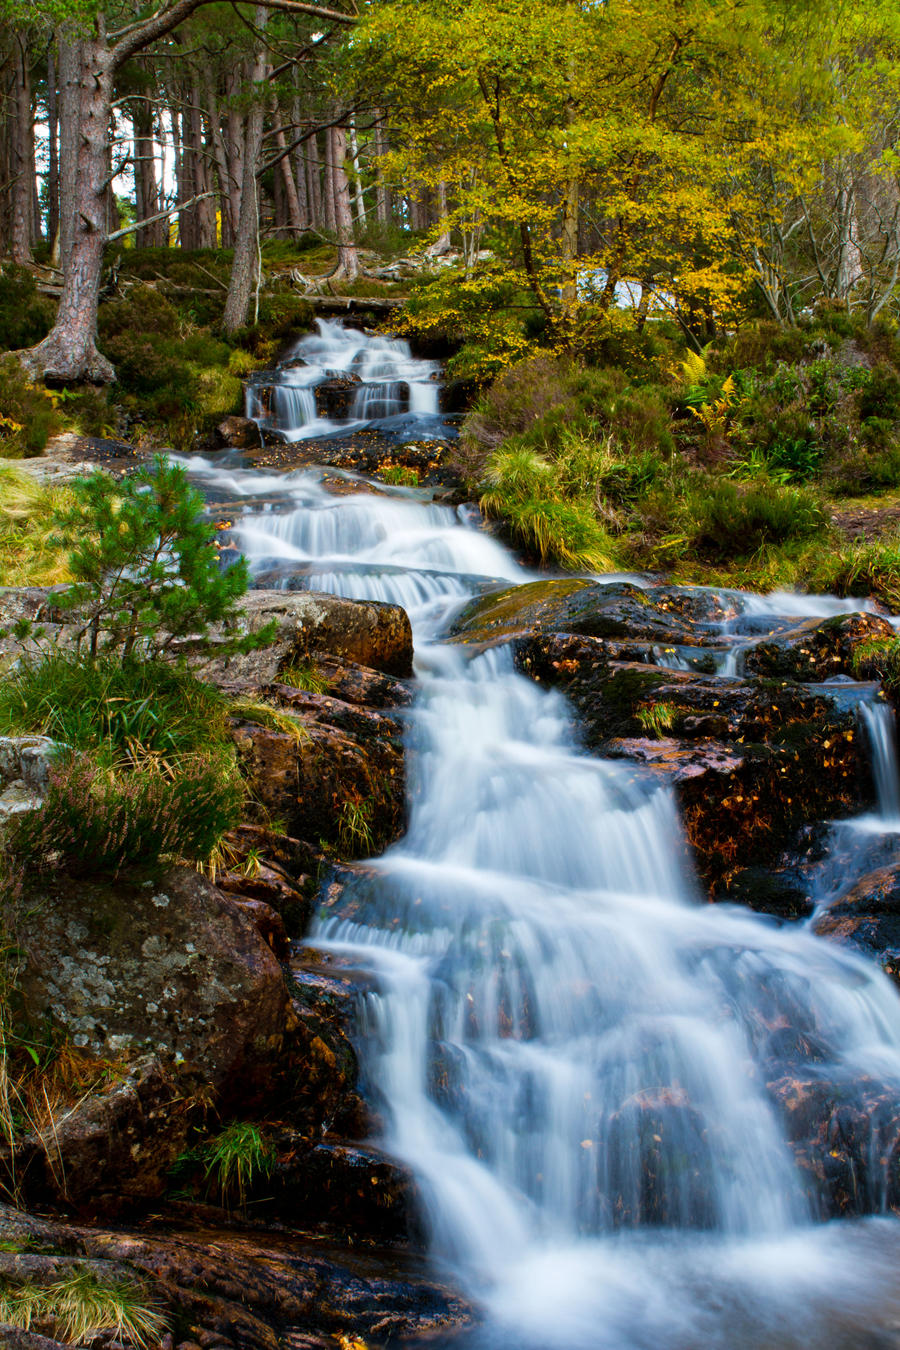 Glen Feshie Waterfall by Weevil07